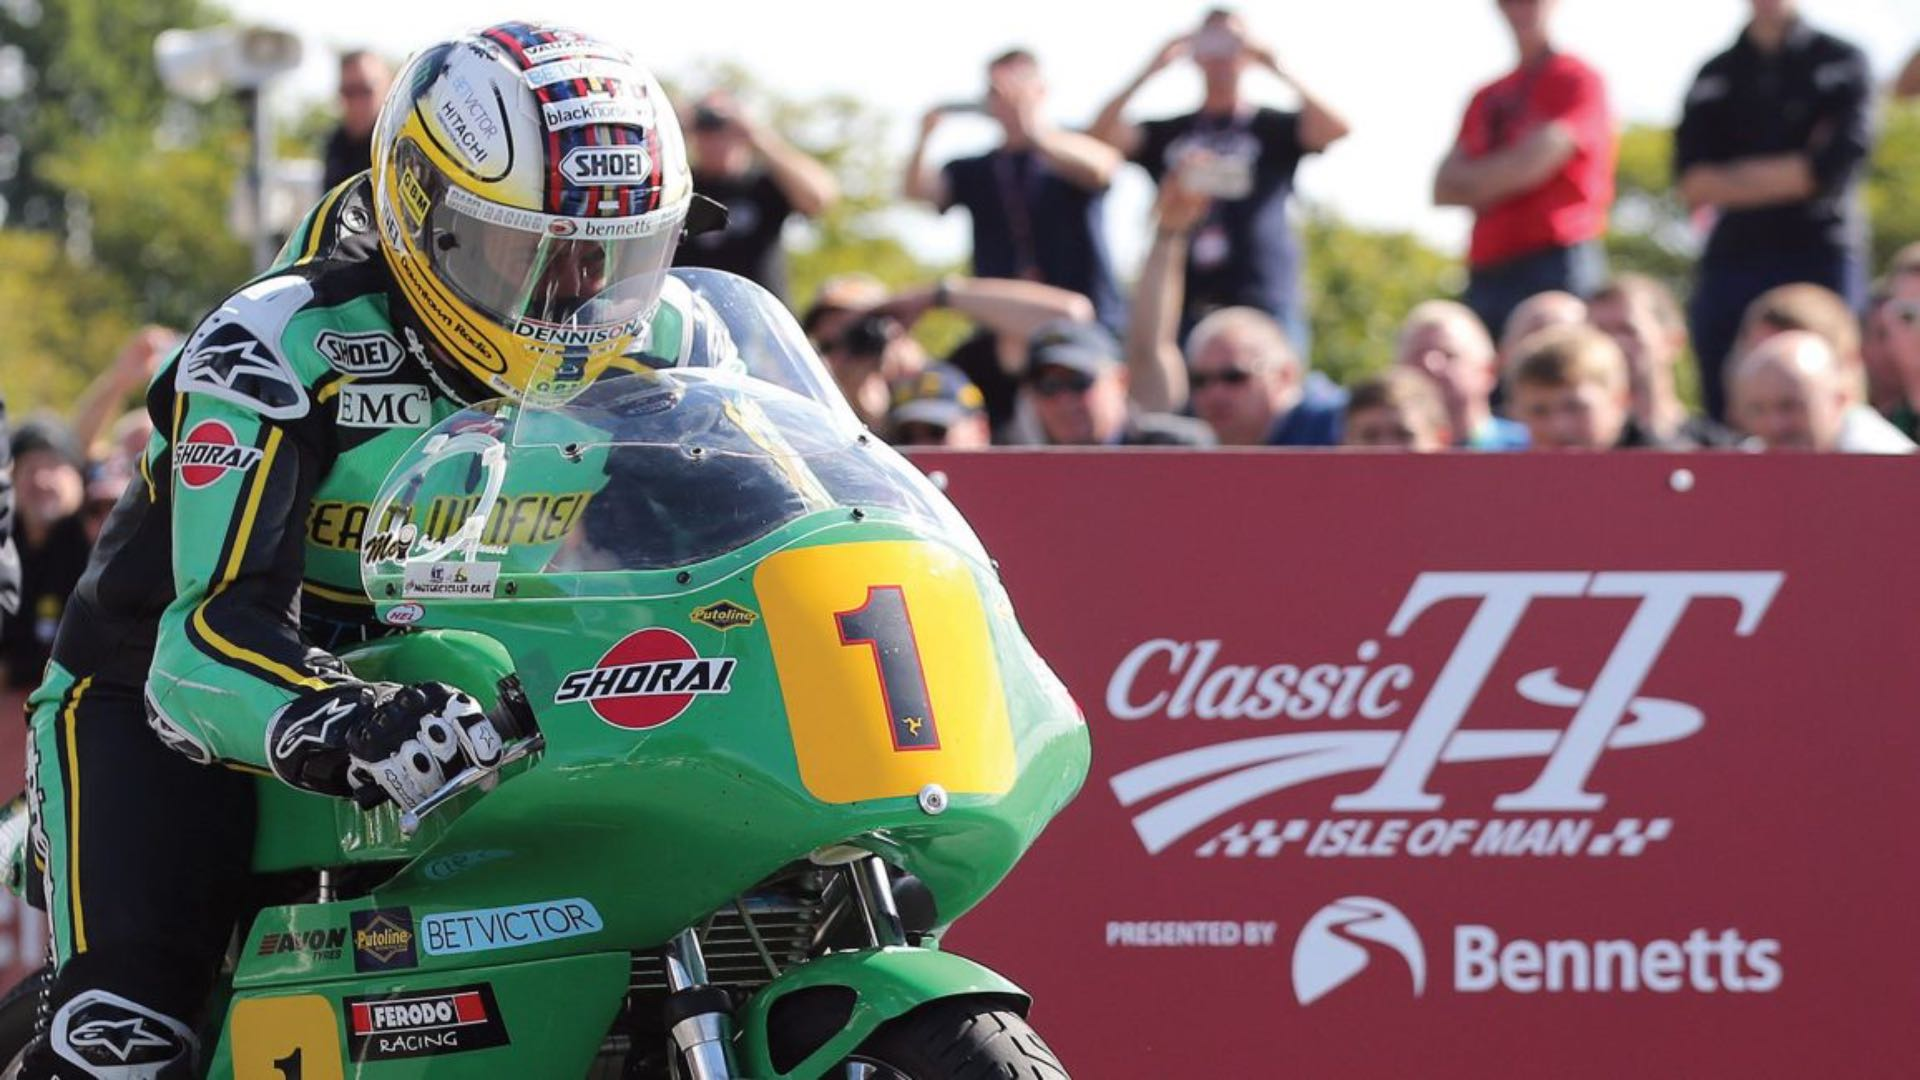 2019 Isle of Man Classic TT: Rider Entry List Headed by McGuinness